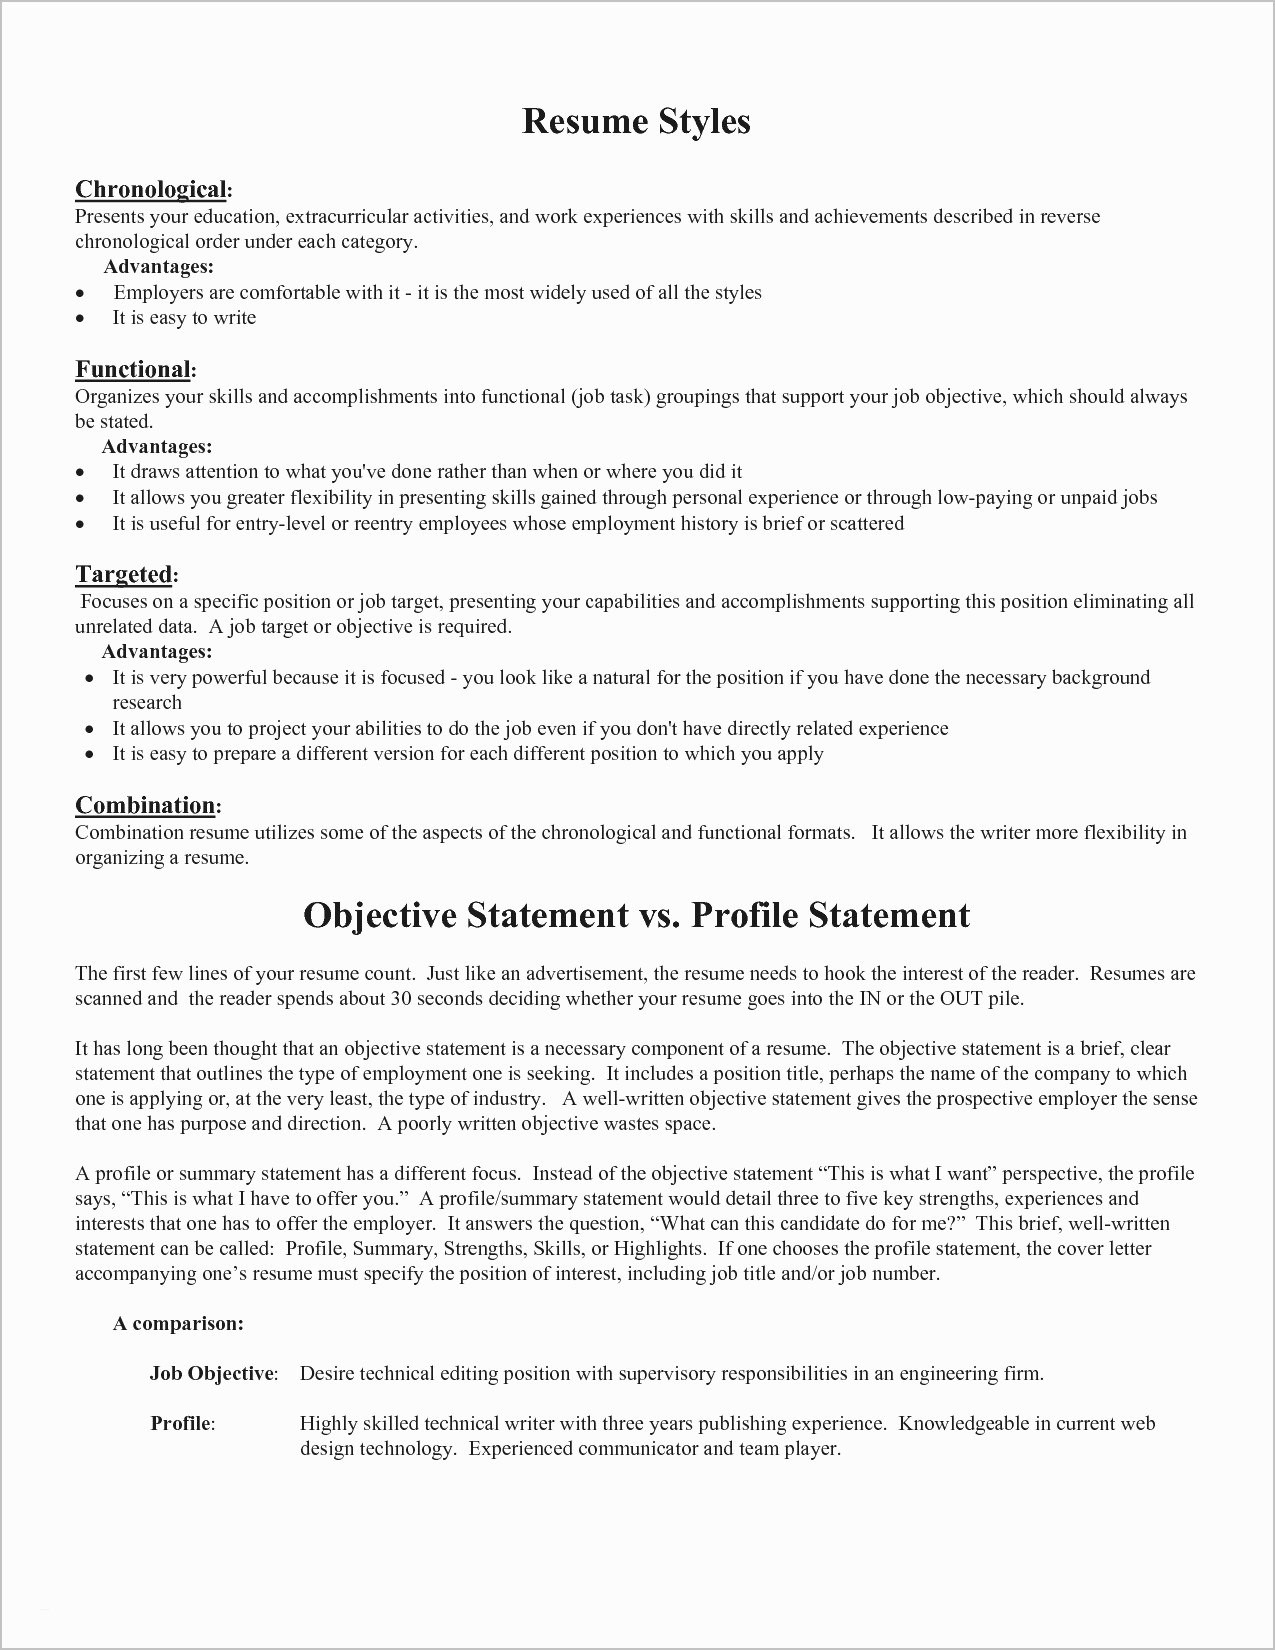 Bination Resume Template For Stay At Home Mom